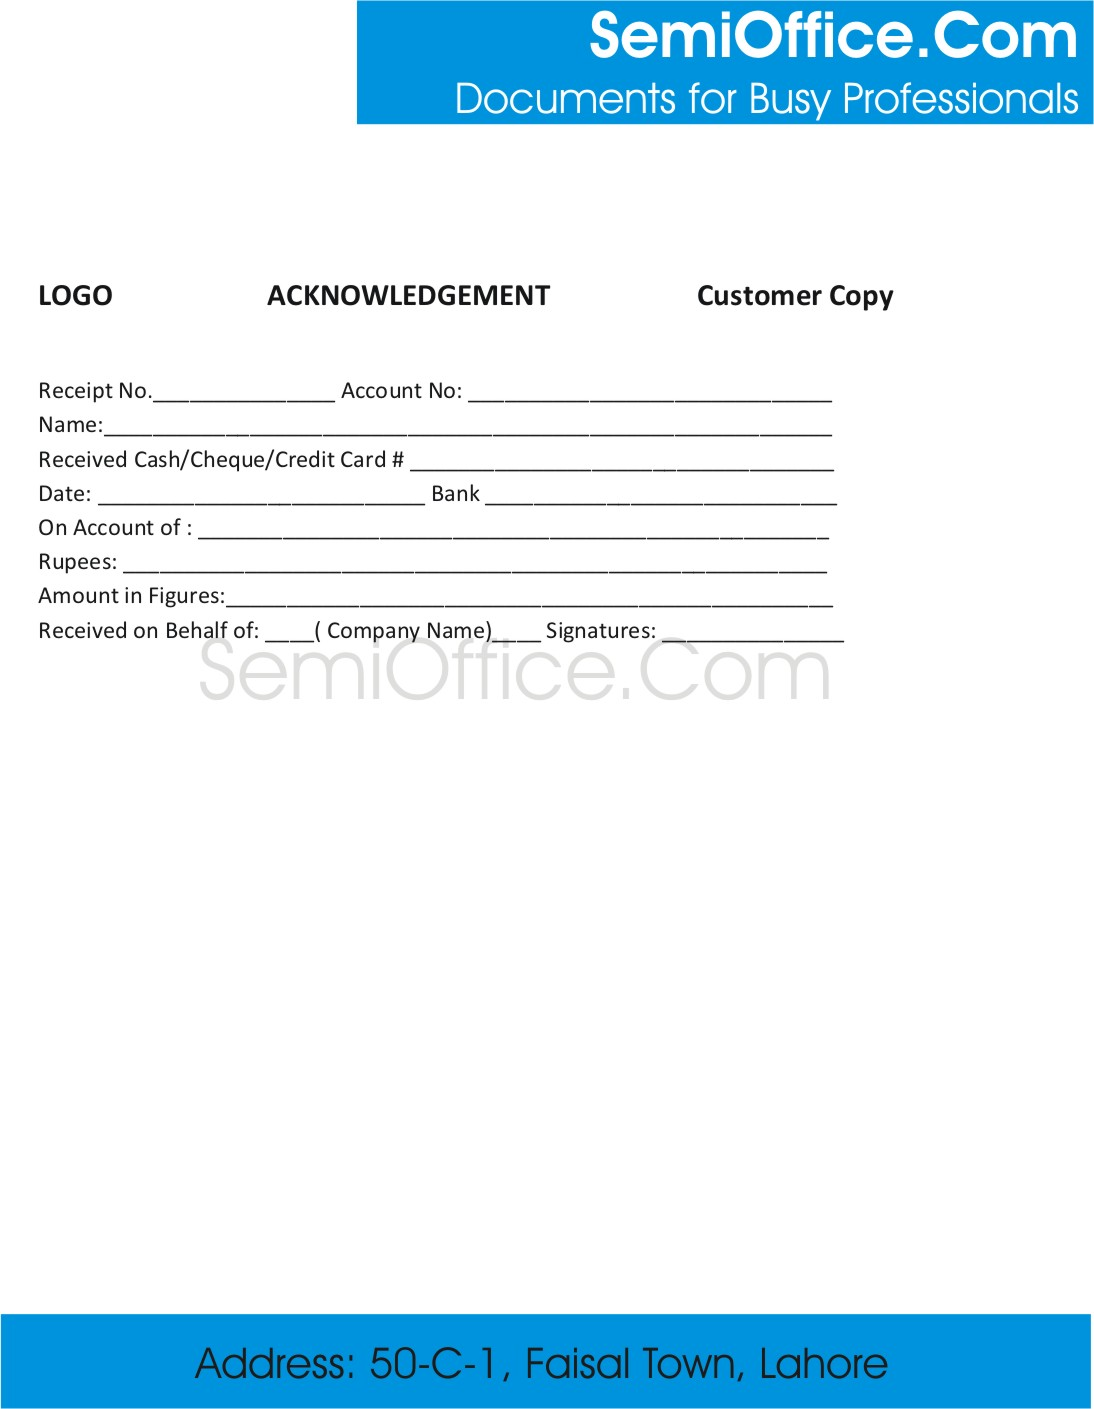 Sample Acknowledgement Receipt Template